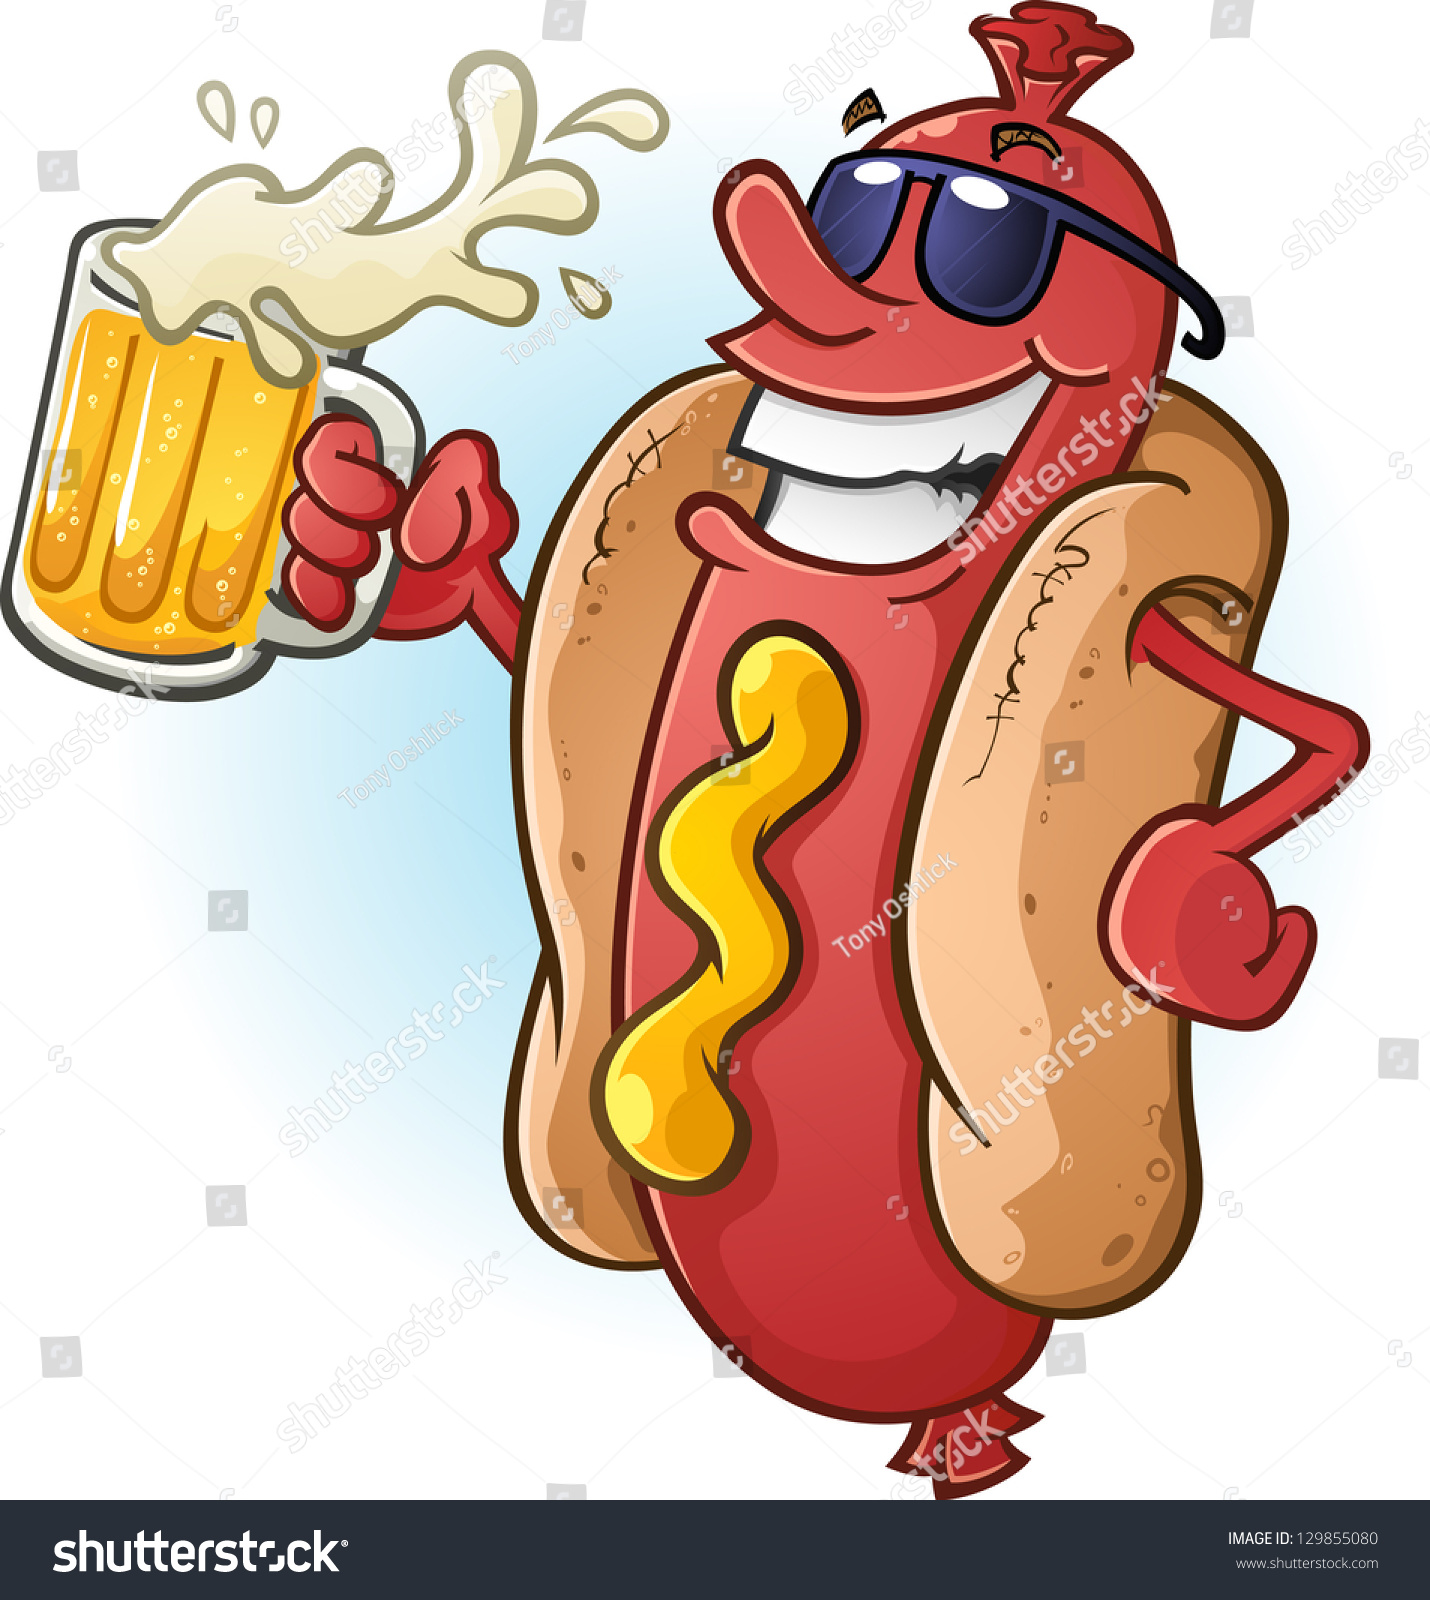 Image Result For Dog Wiener In Spanish